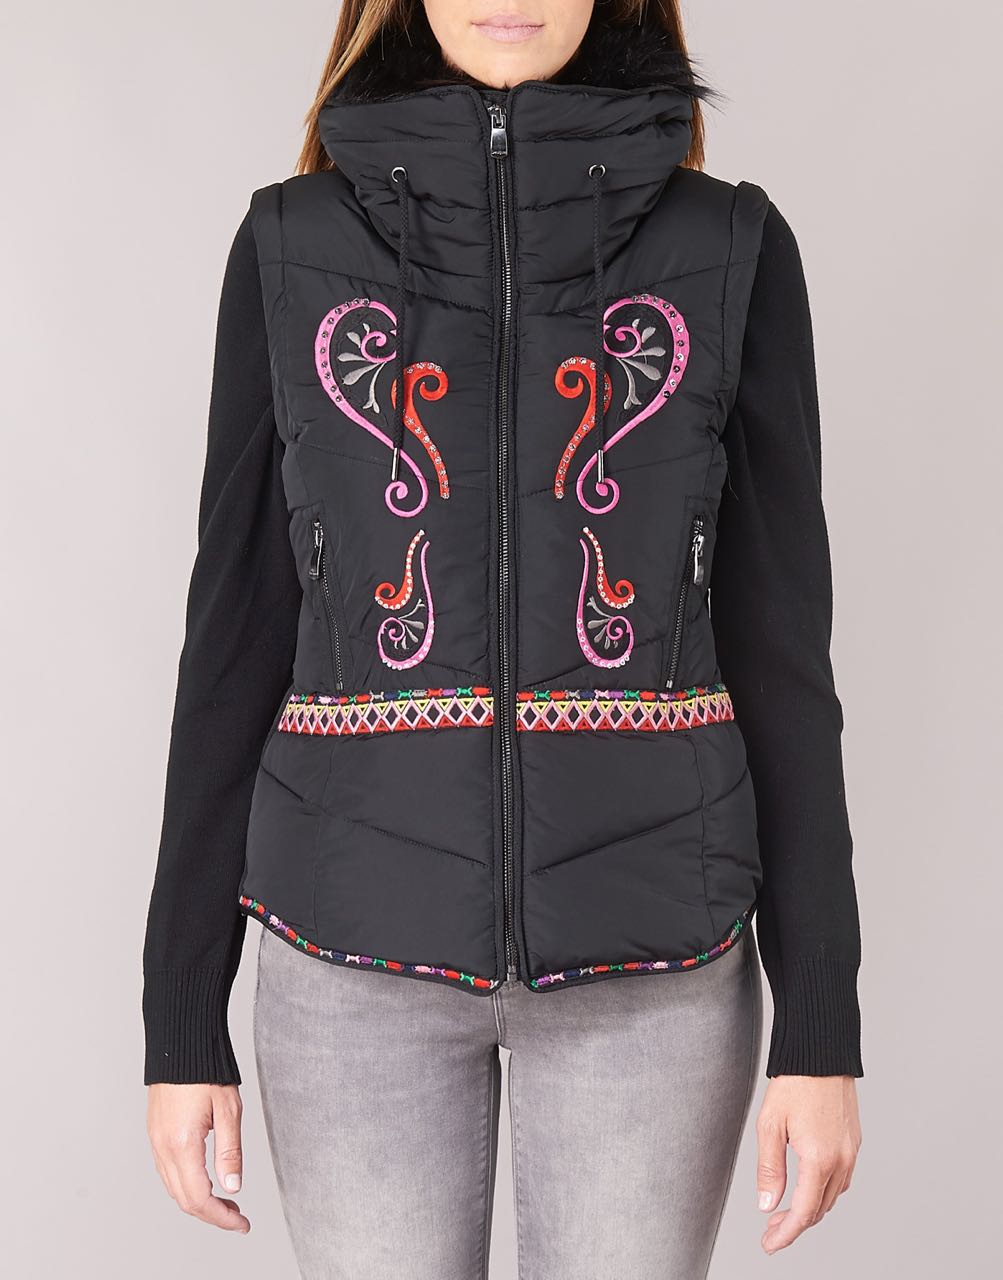 Desigual Jacket 2019 Winter 18wwewb3 Margadan Embroidery Black aaZxn7W